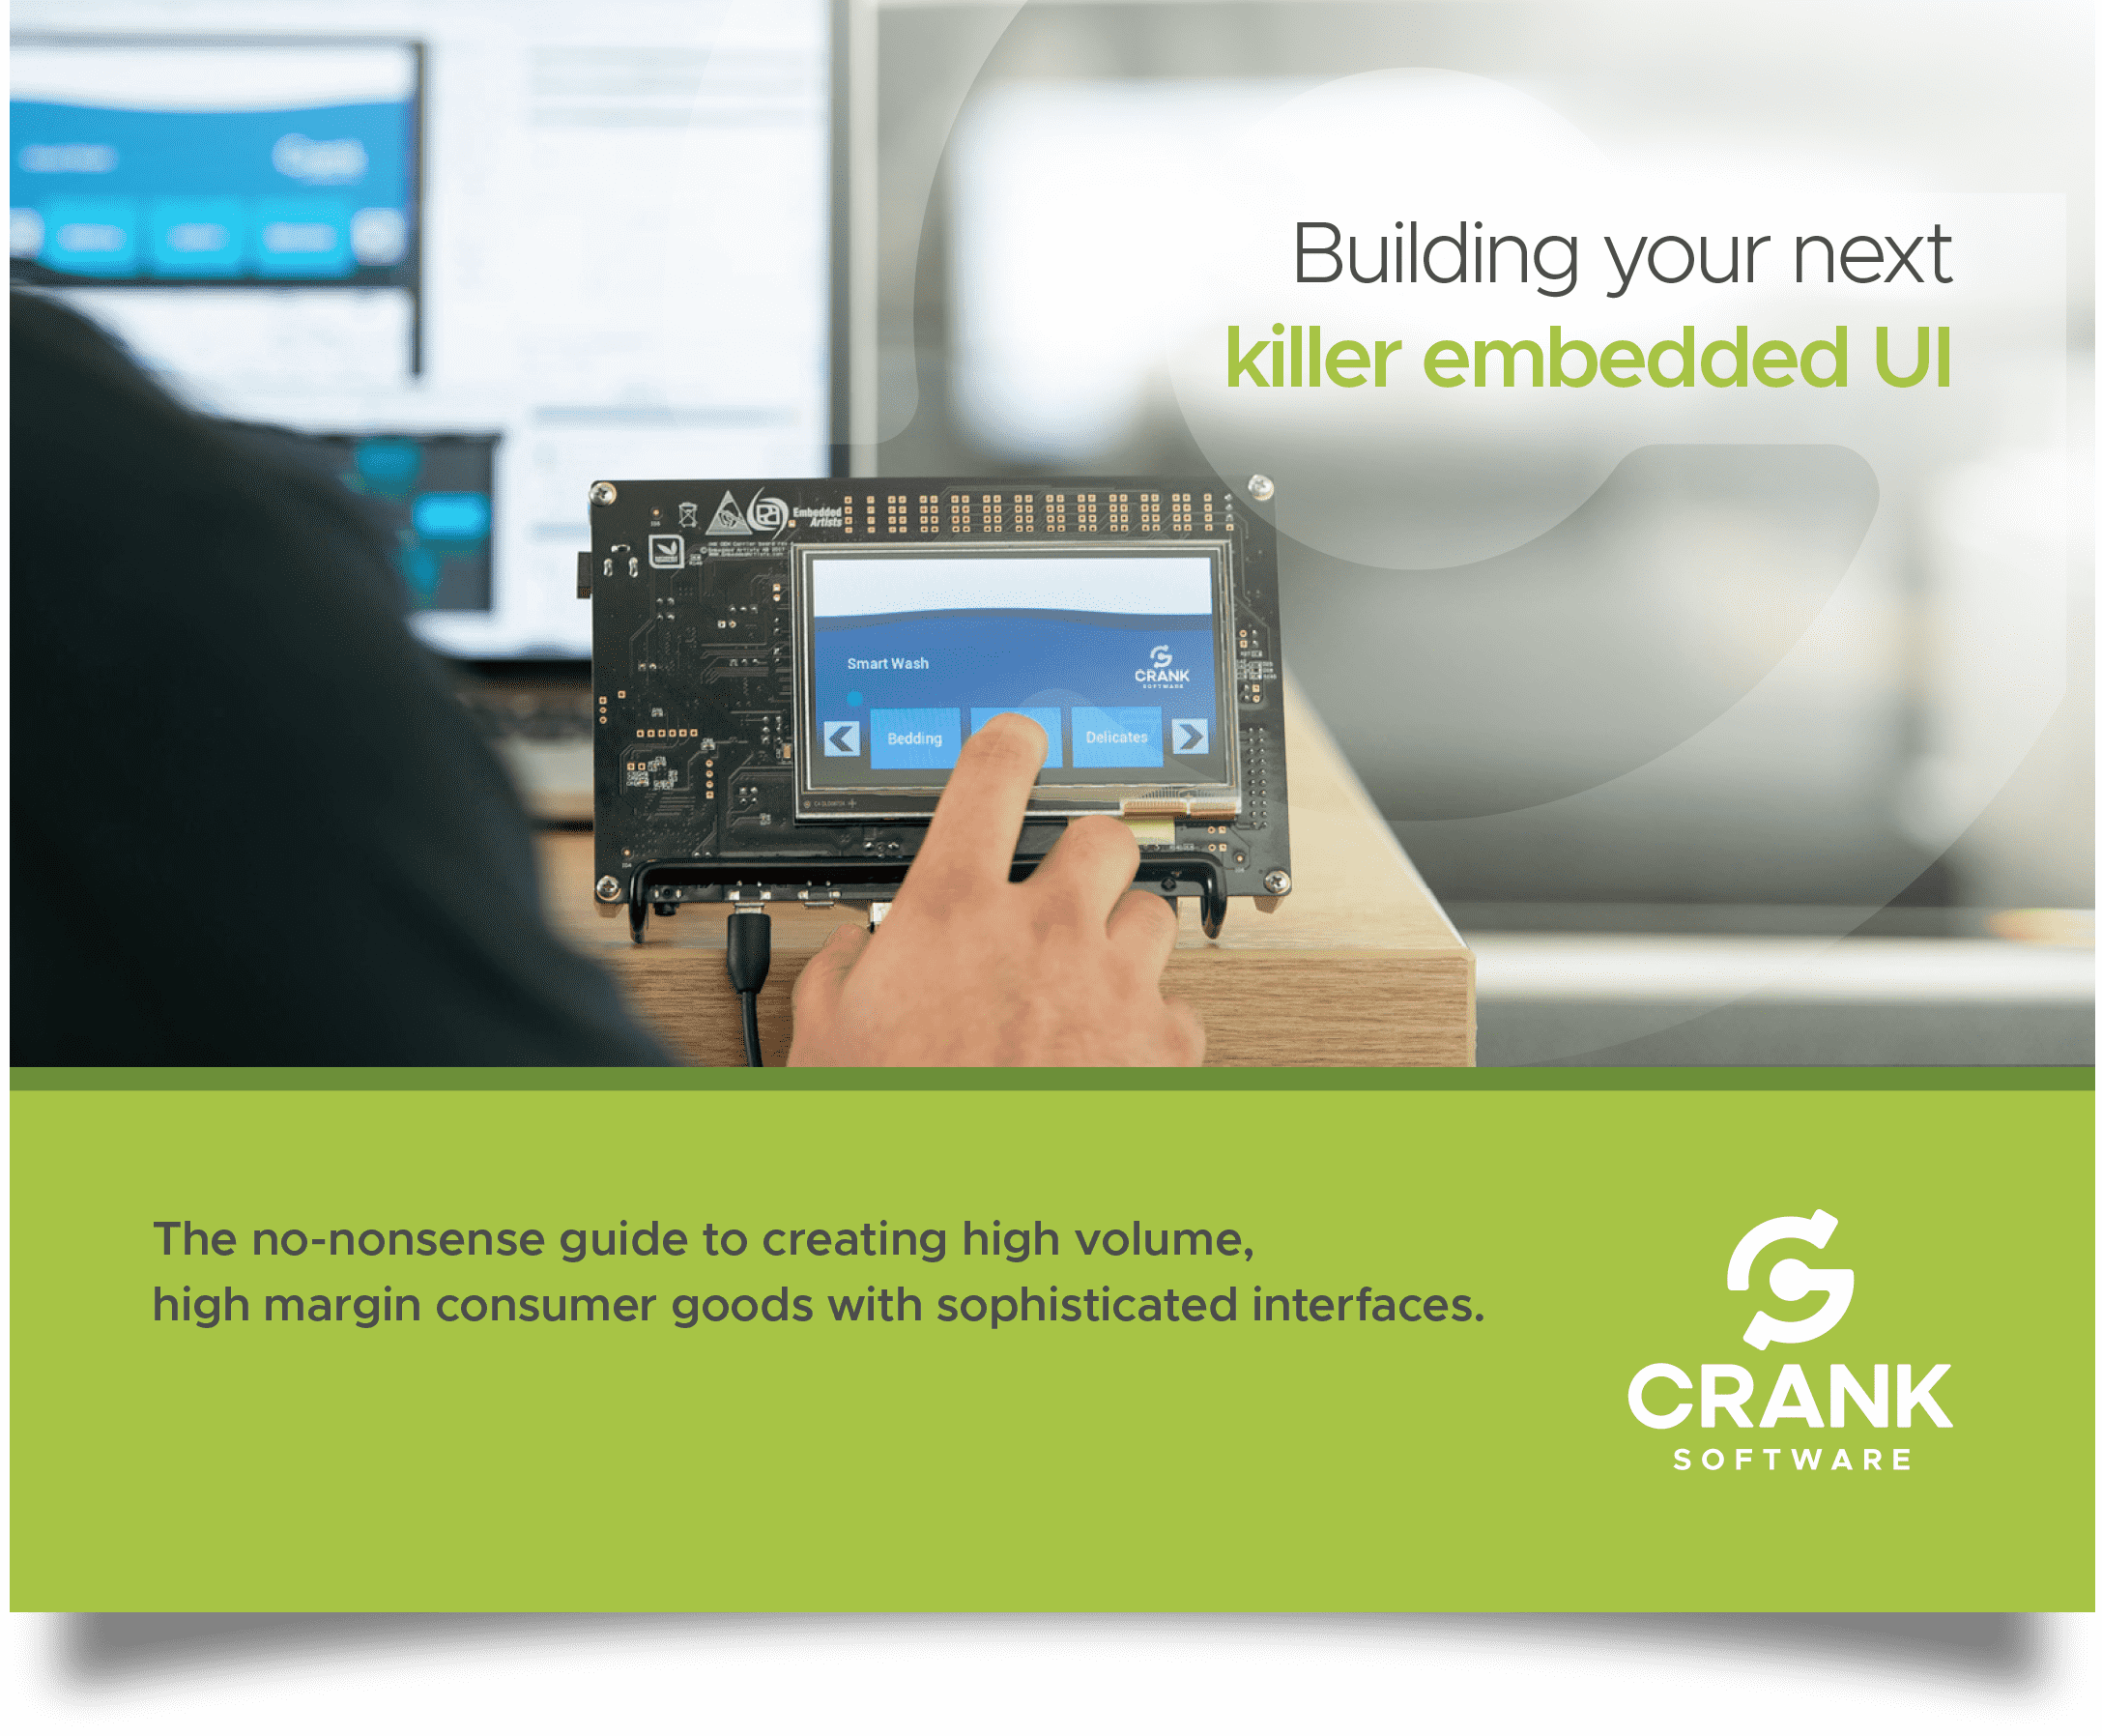 Crank Software's eBook cover: Building your next killer embedded UI